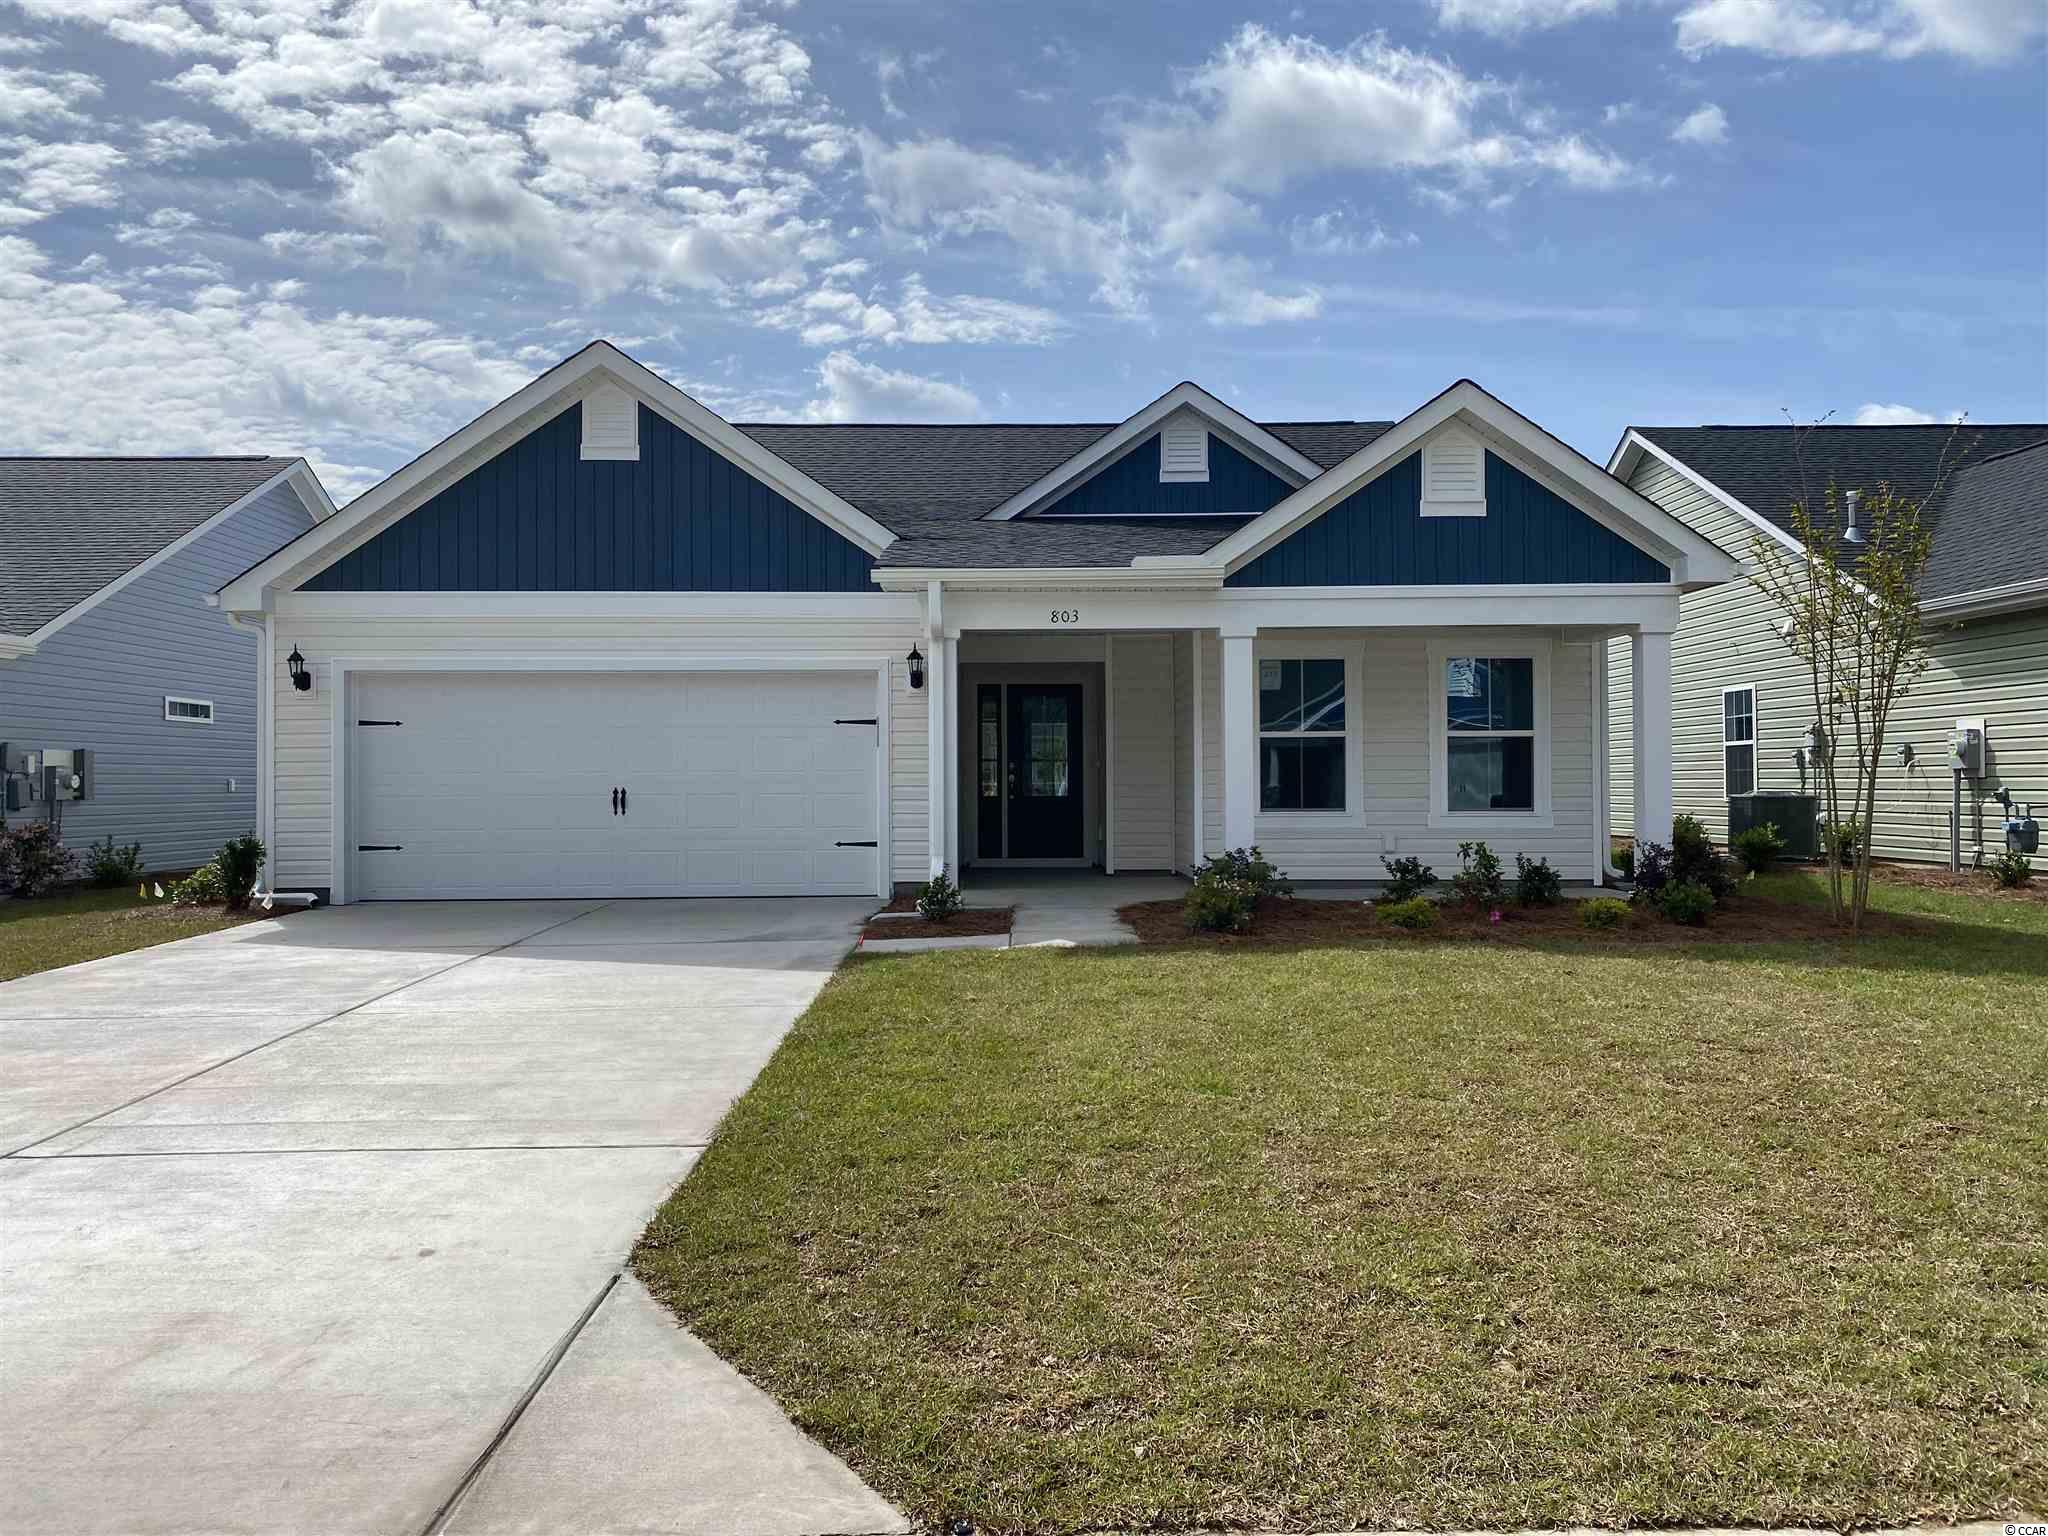 Visit Palm Lakes to day to see our decorated model. Choose from 7 floorplans and make it your own by selecting from a variety of structural and design options.  Located between the sleepy fishing village of Little River and eclectic vibes of North Myrtle Beach, Palm Lakes is convenient to everything the north end of the Grand Strands has to offer. Quick access to major roads like Hwy 31, Hwy 90, Hwy 17 and Hwy 9, you're minutes to wide, sandy beaches, championship golf, great shopping, amazing nightlife and first-class medical facilities.  With its beautiful boulevard entry lined with palm trees, owner's clubhouse and swimming pool, Palm Lakes offers Natural Gas. If that isn't enough, Palm Lakes is a mere 2 miles from the new North Myrtle Beach Sports Complex. The park offers a diverse selection of sport facilities that are easily accessible and can accommodate most everyone. Enjoy everything that North Myrtle Beach and Little River has to offer when you make Palm Lakes your home.